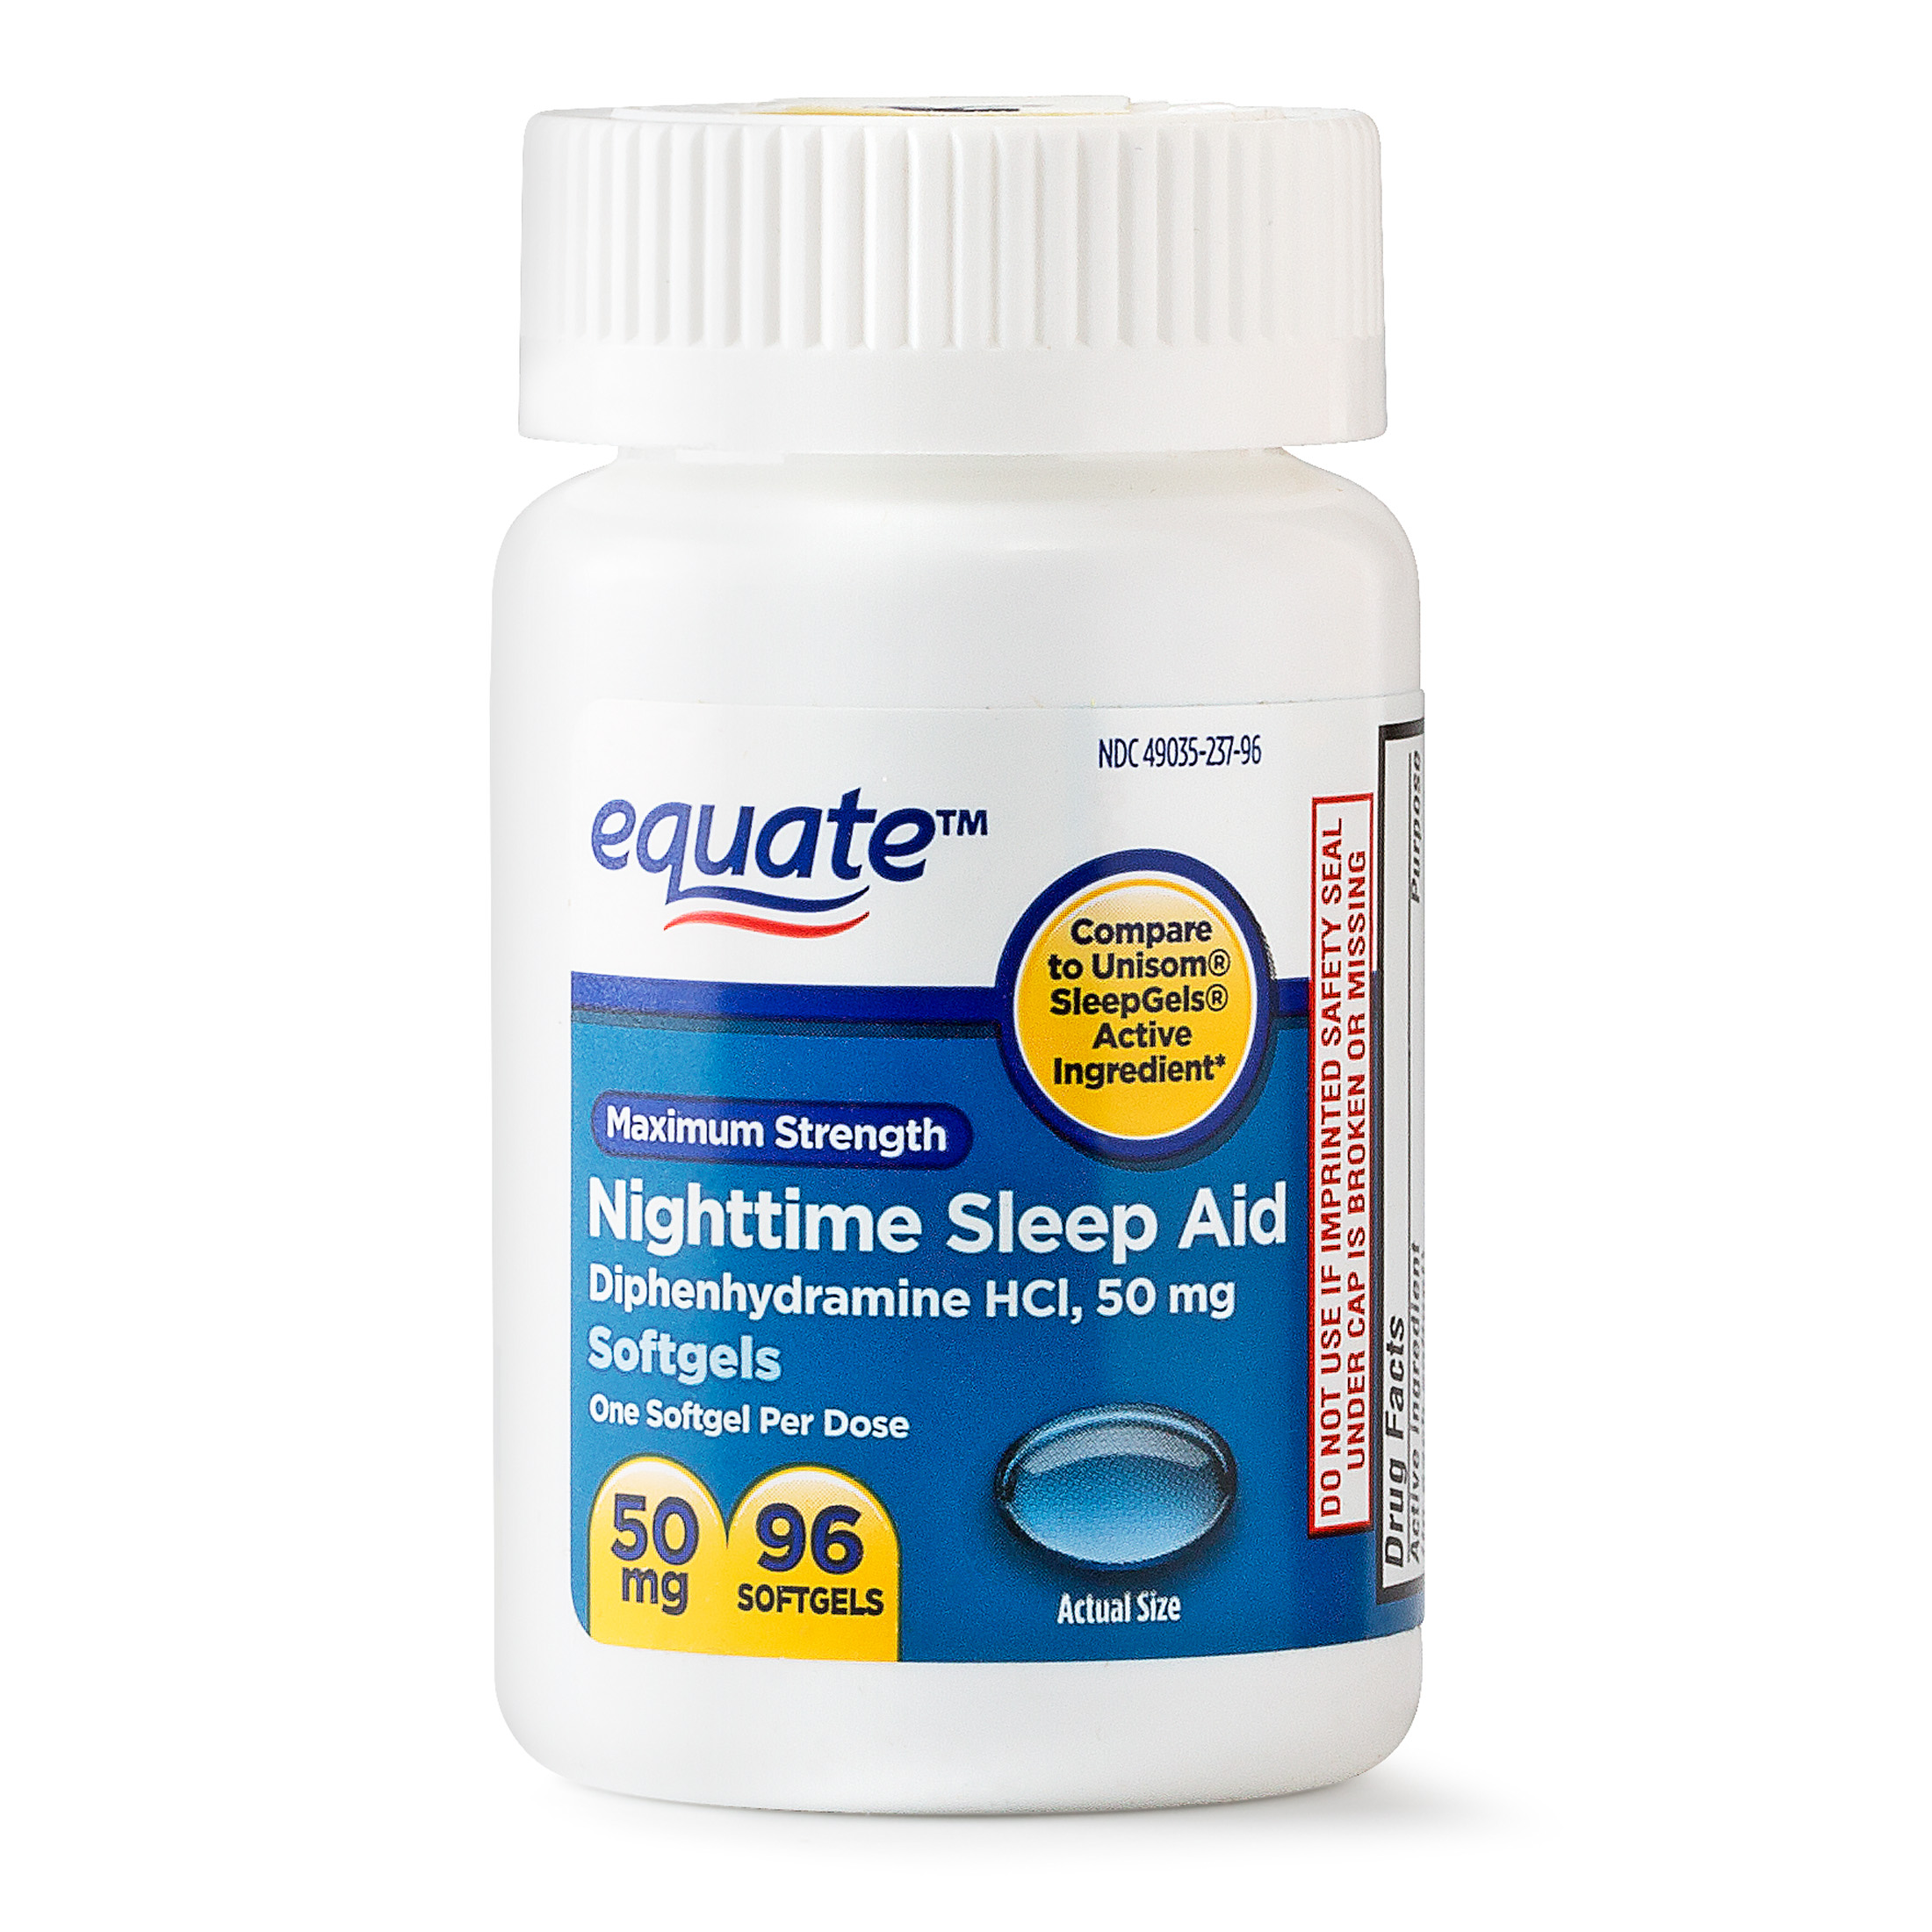 Equate Maximum Strength Nighttime Sleep Aid Softgels, 50 mg, 96 Ct